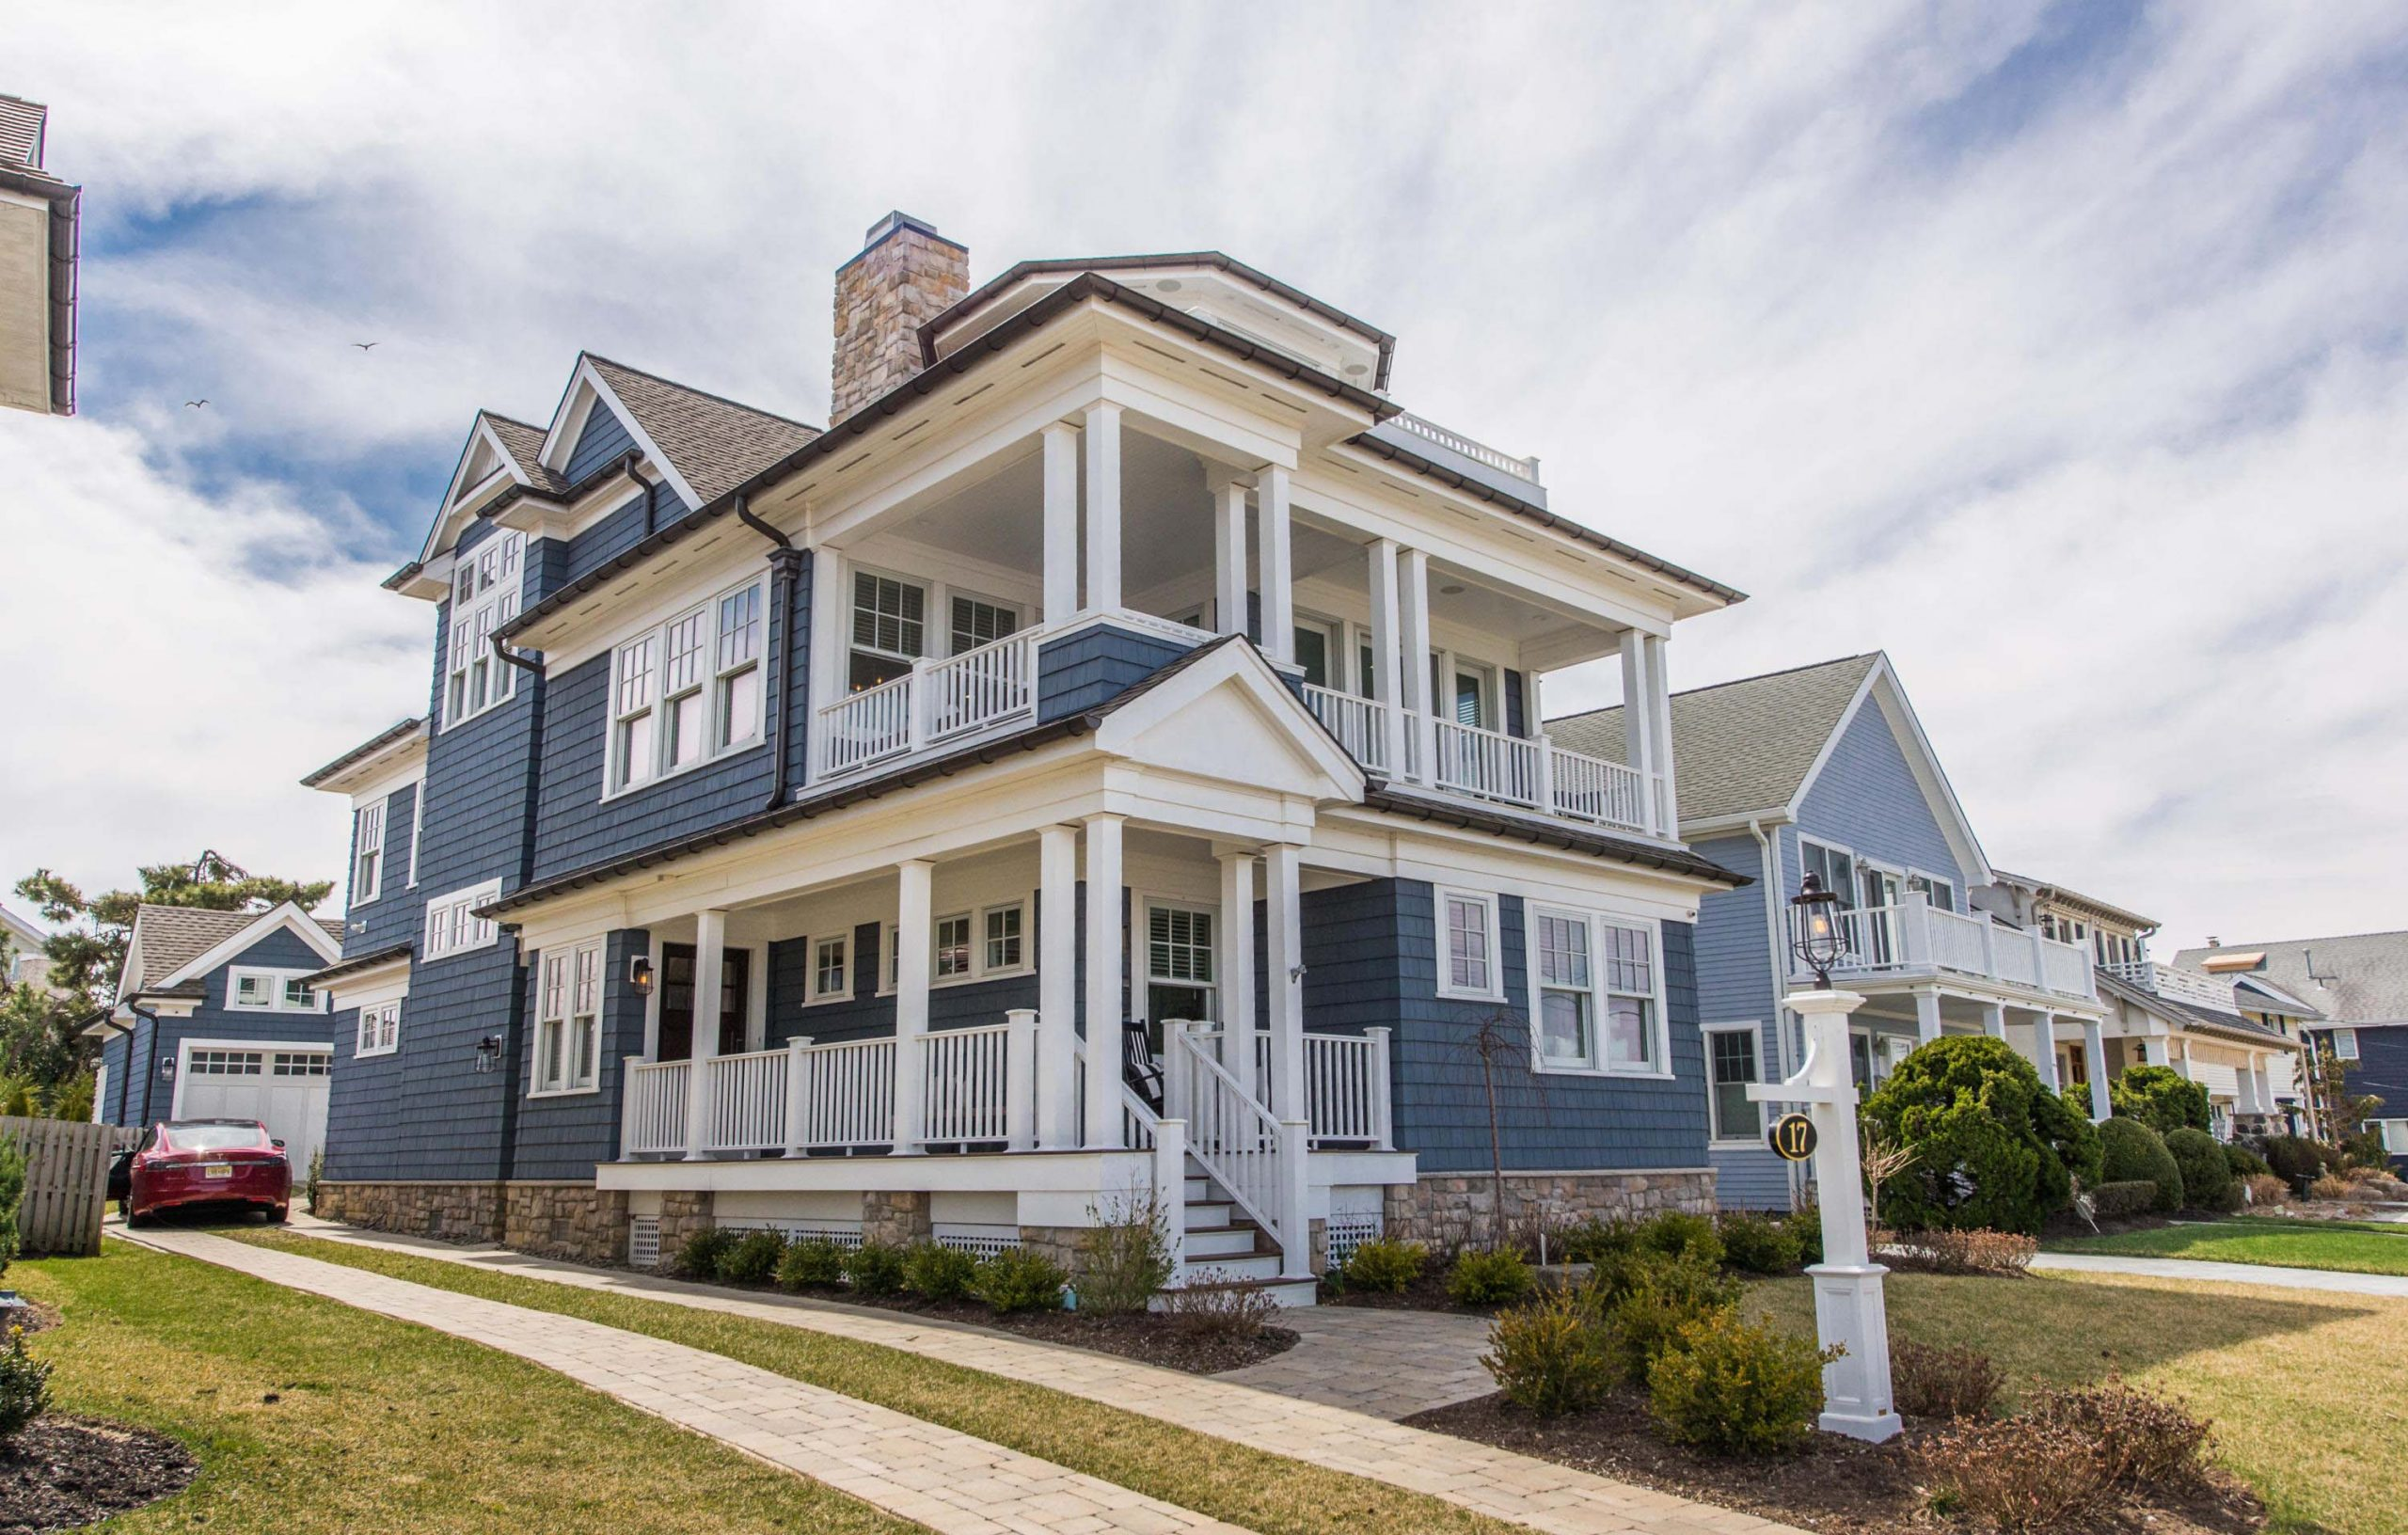 Blue vinyl siding colors with white trim. White wall panels. White square porch columns with white railings. Brown stone veneer. Black front door. Brown gutters. Brown stone veneer chimney with metal cap.